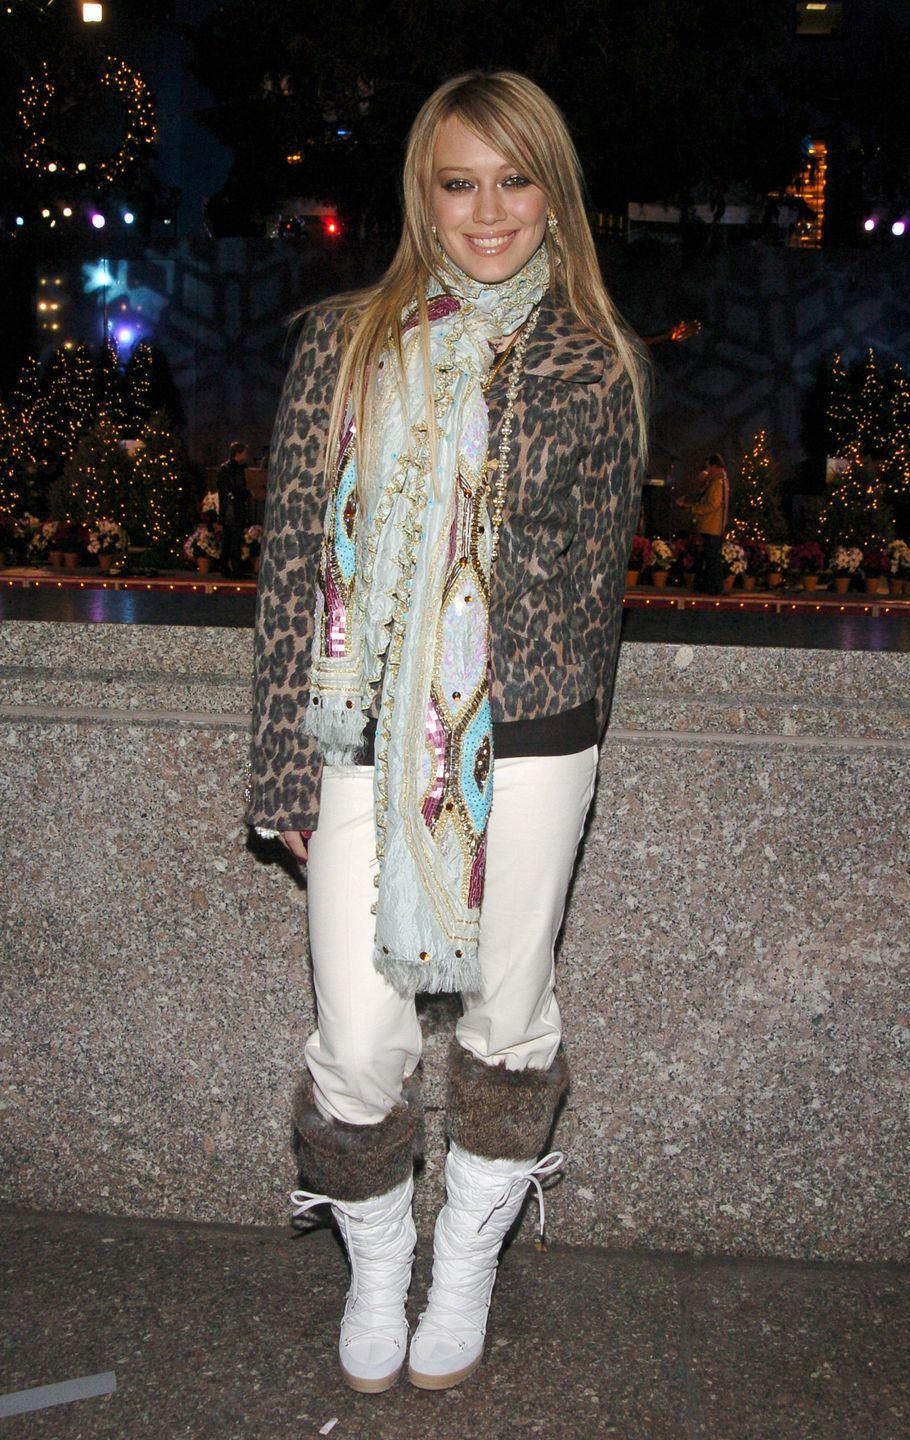 <p>Here, it's as if Hilary Duff decided to try out every trend of the early '00s at once while attending the Rockefeller Plaza Christmas Tree Lighting ceremony.</p>